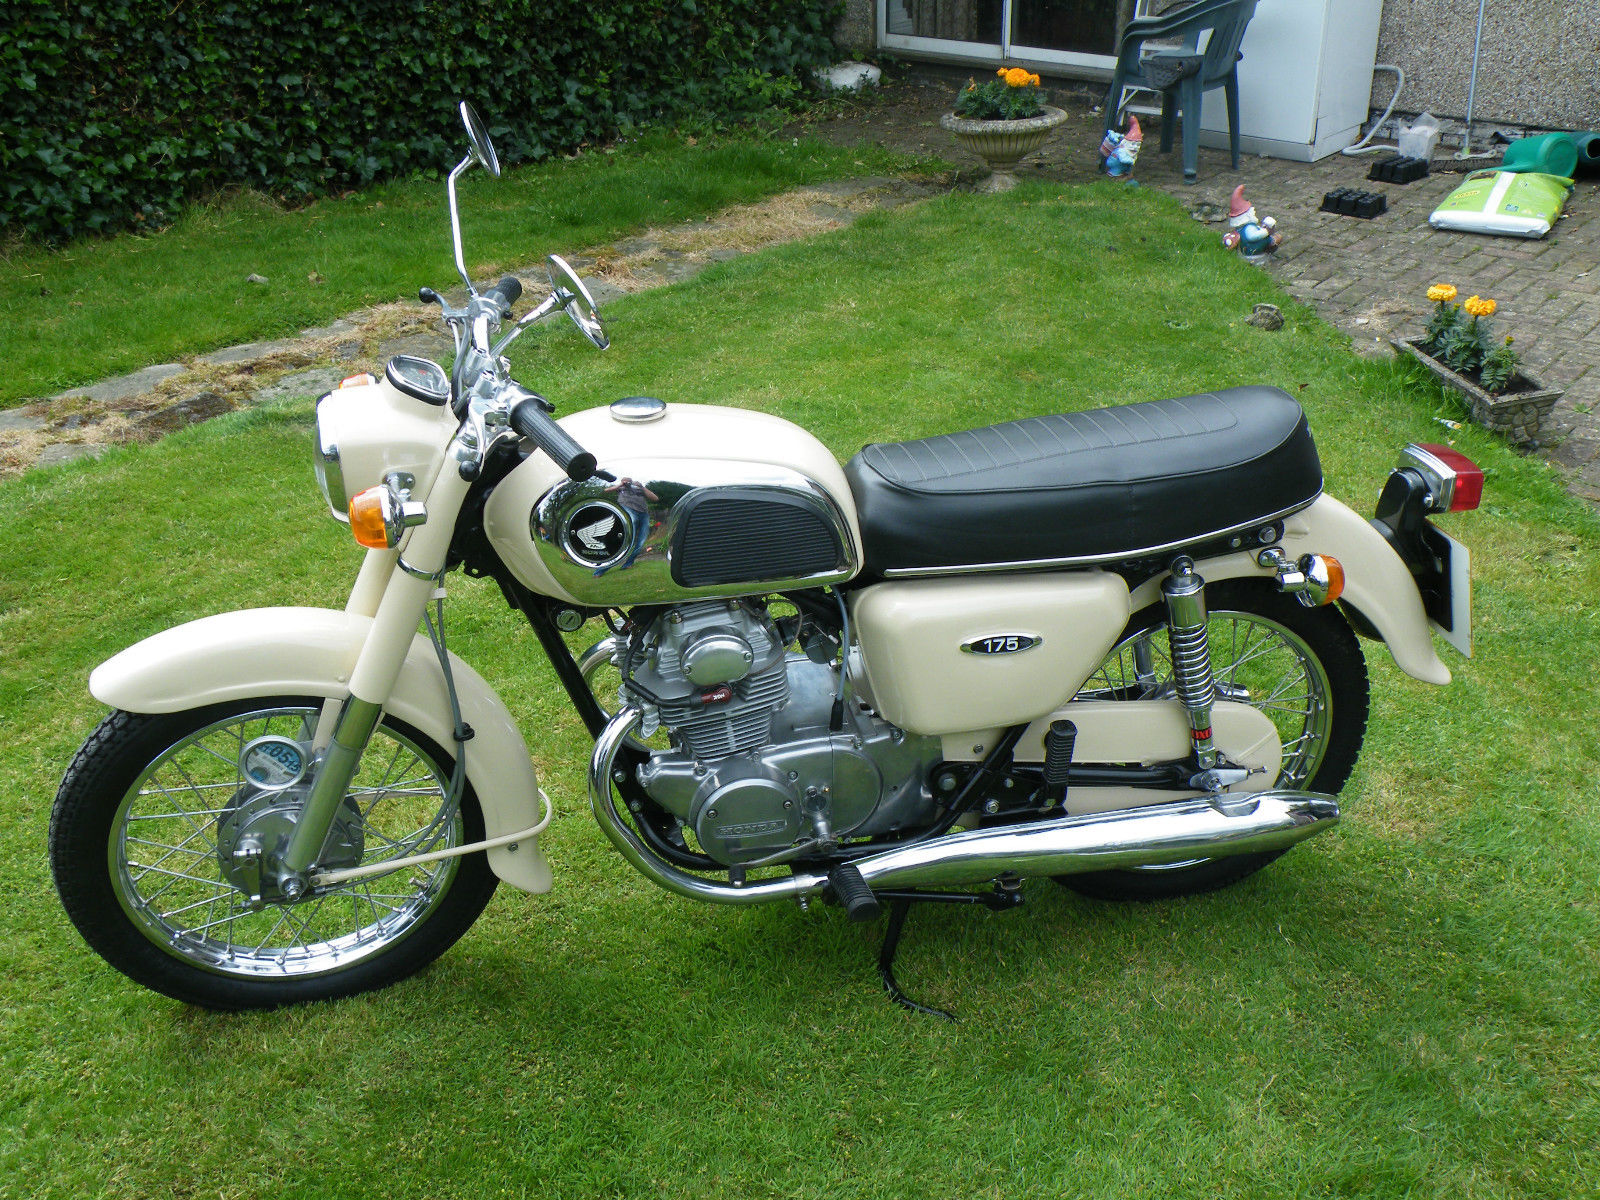 restored honda cd175 1974 photographs at classic bikes. Black Bedroom Furniture Sets. Home Design Ideas